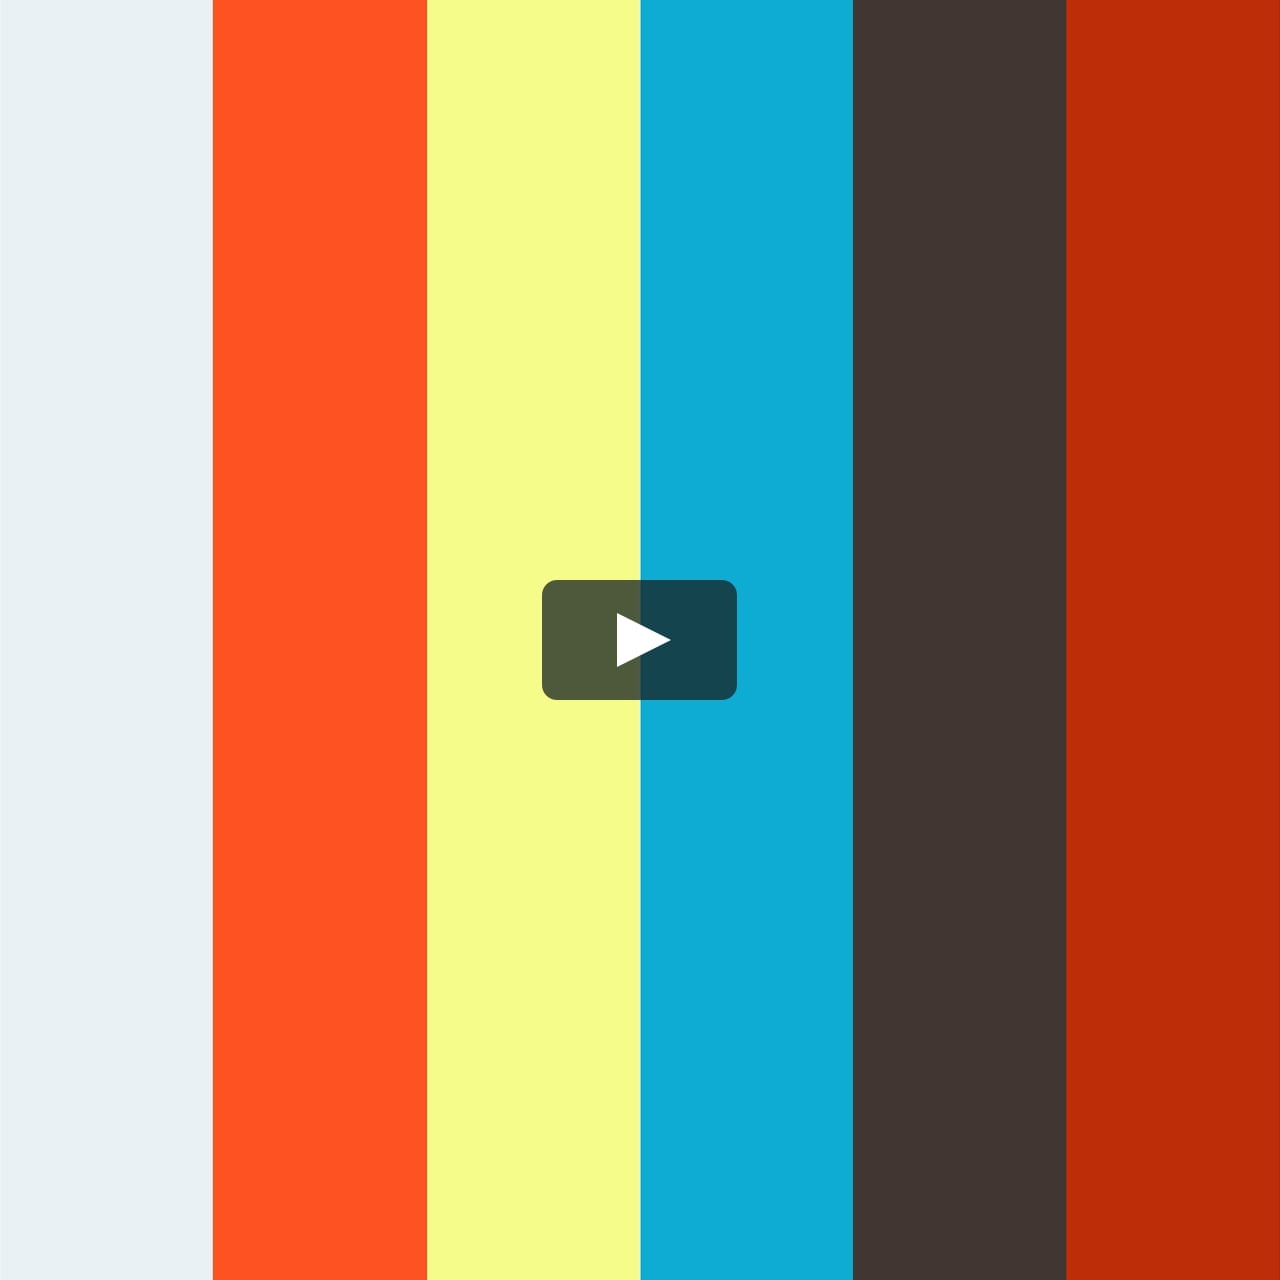 Halloween at Freddy's by TryHardNinja on Vimeo